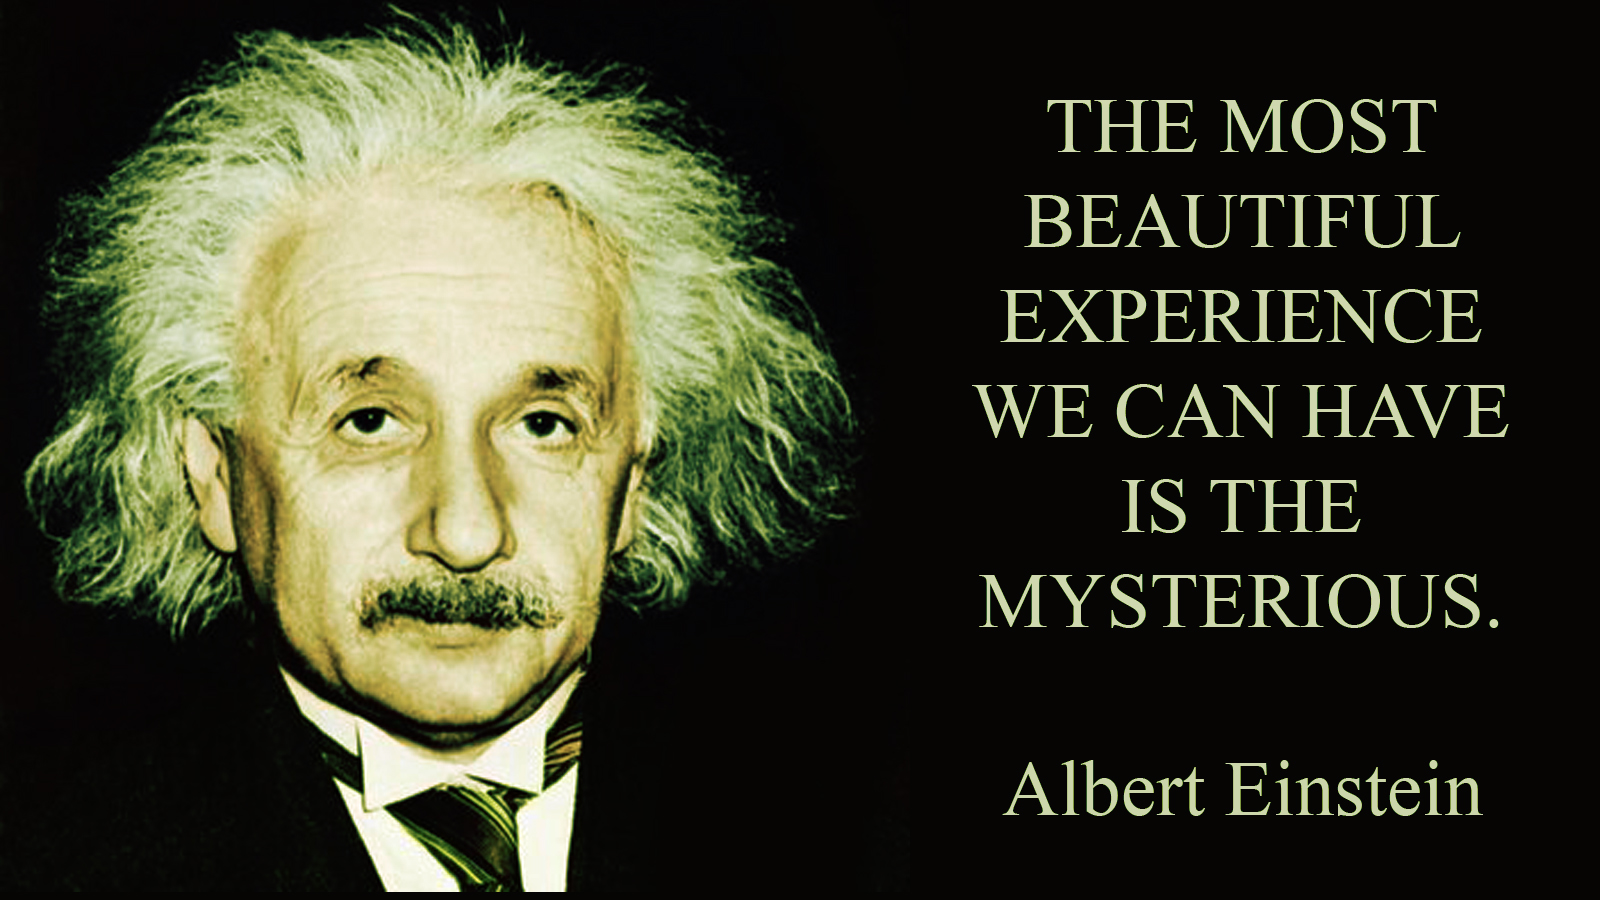 Albert Einstein quote - the most beautiful experience